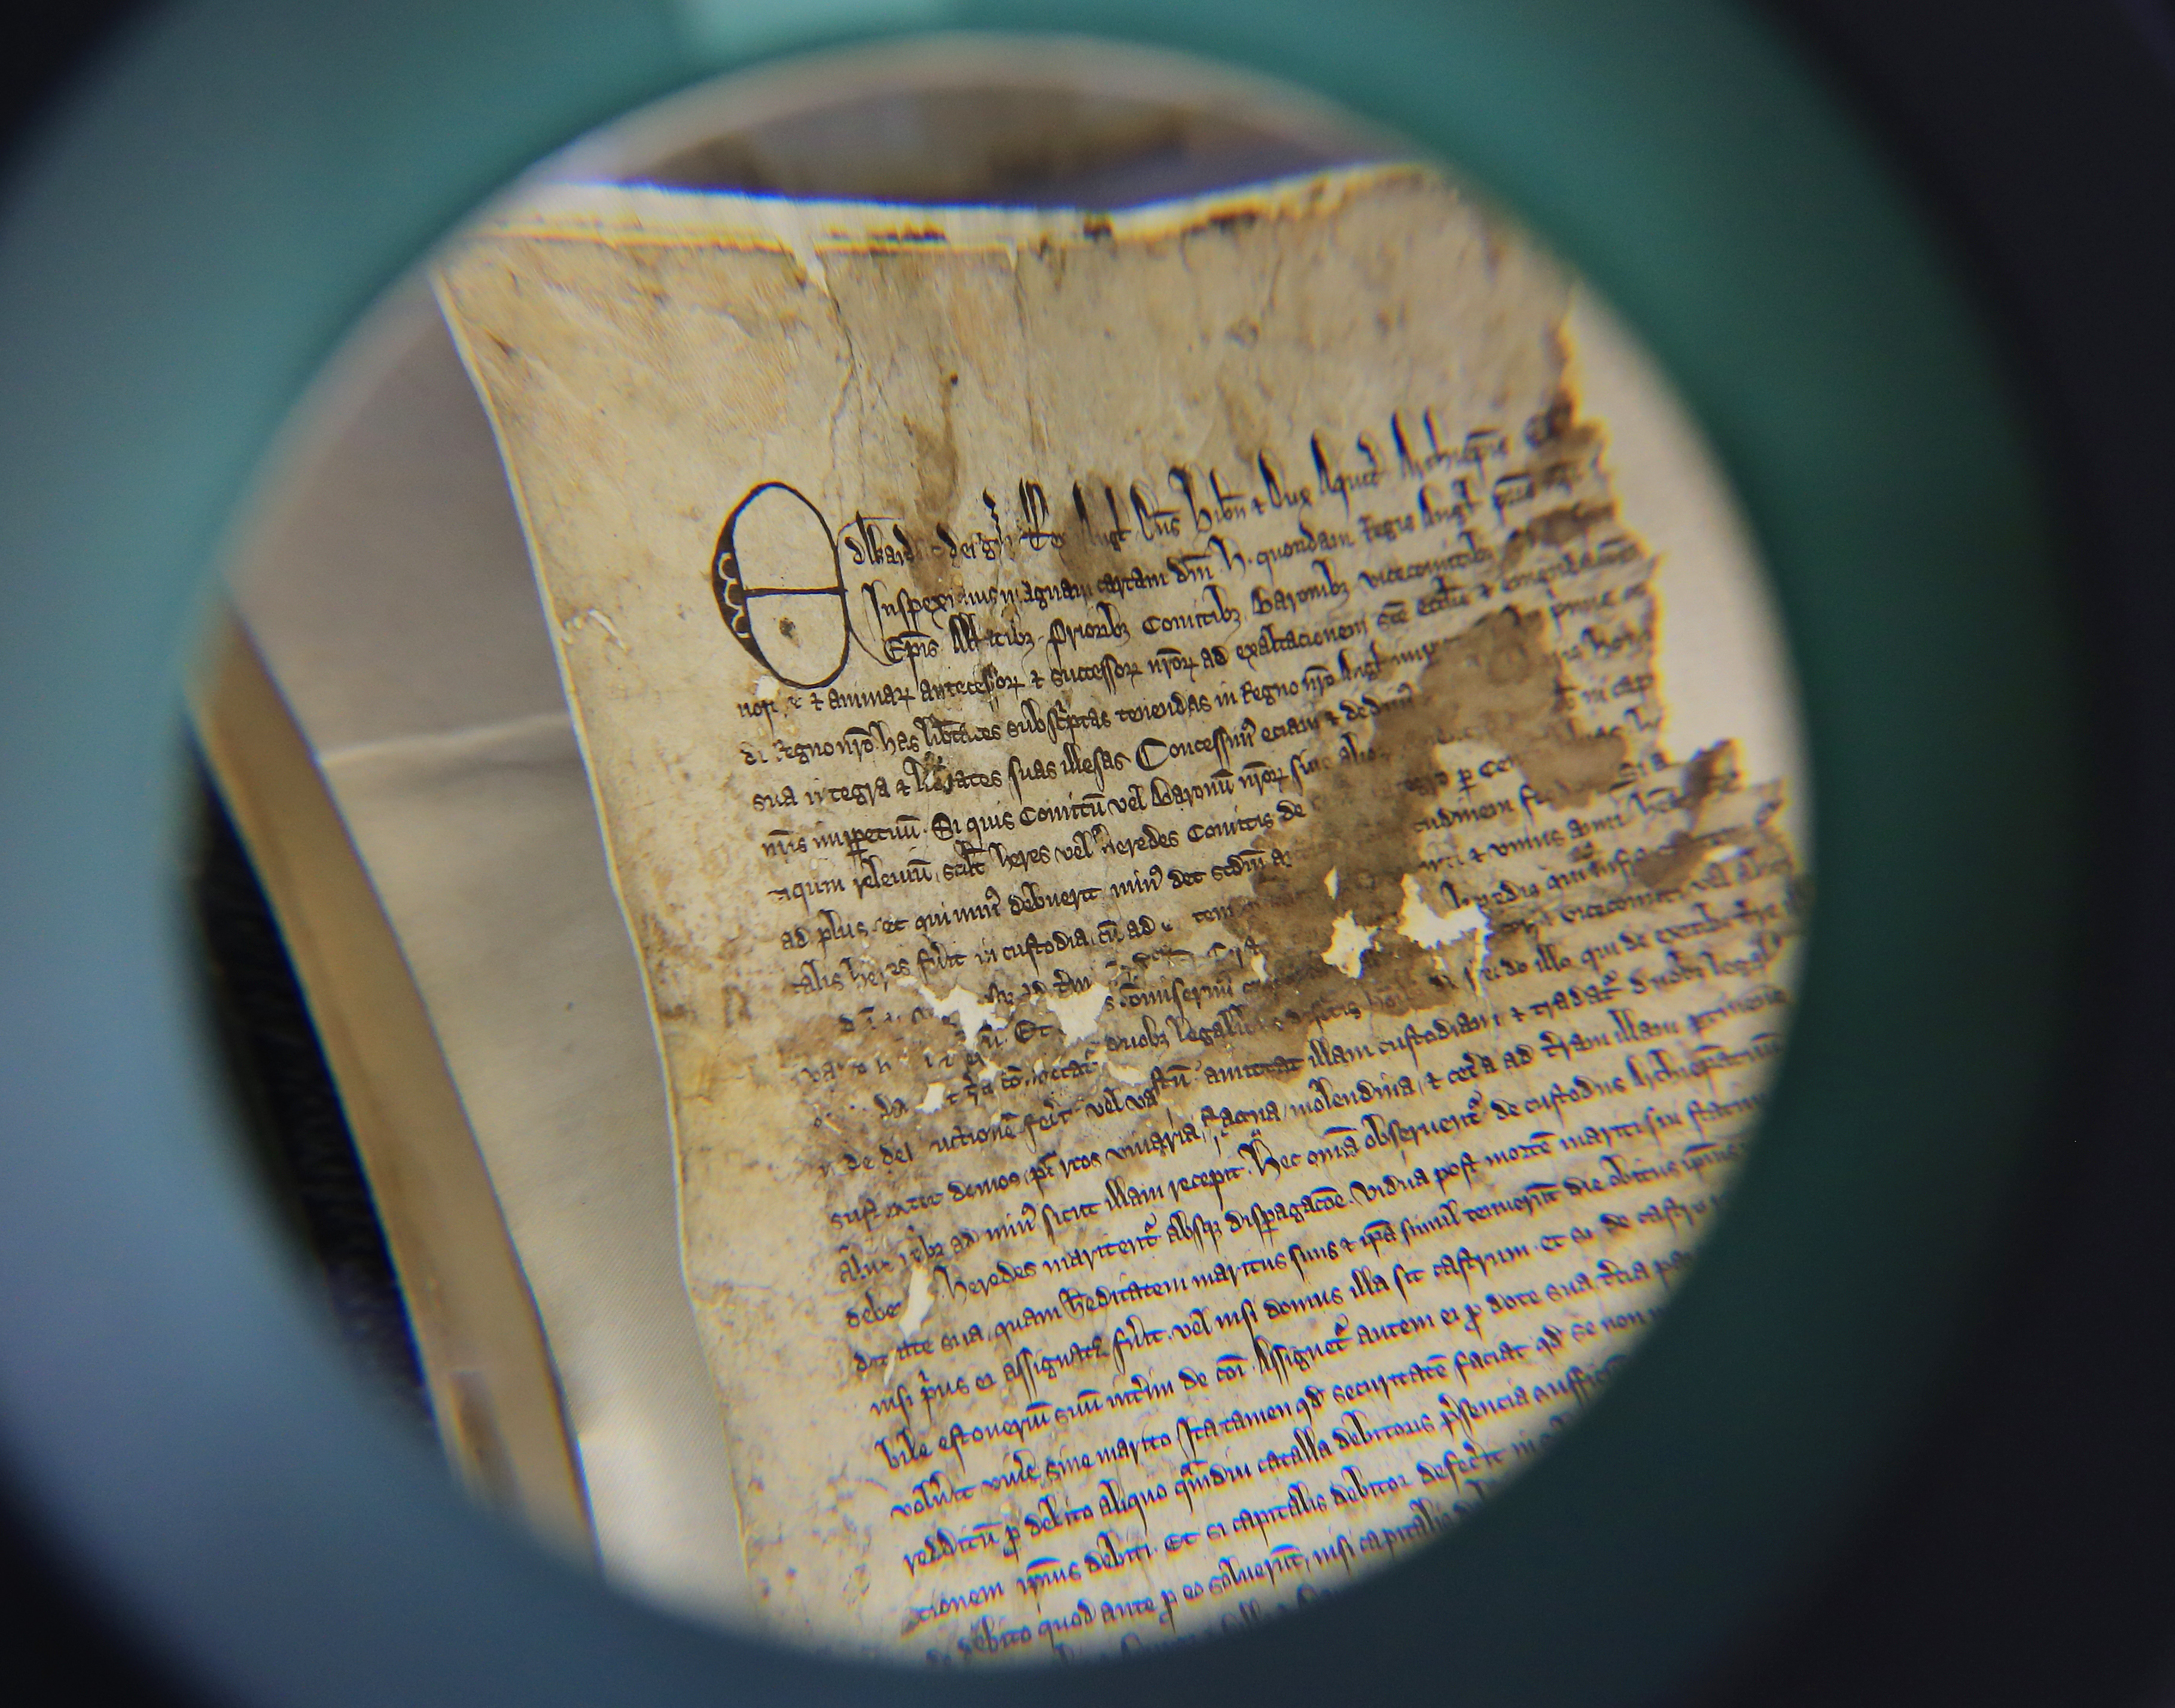 A view through a magnifying glass of part of an original Magna Carta from the issue made in 1300 by King Edward l to the borough of Sandwich in Kent which has recently been discovered in the archives at Kent County Council's Kent History and Library Centre in Maidstone.